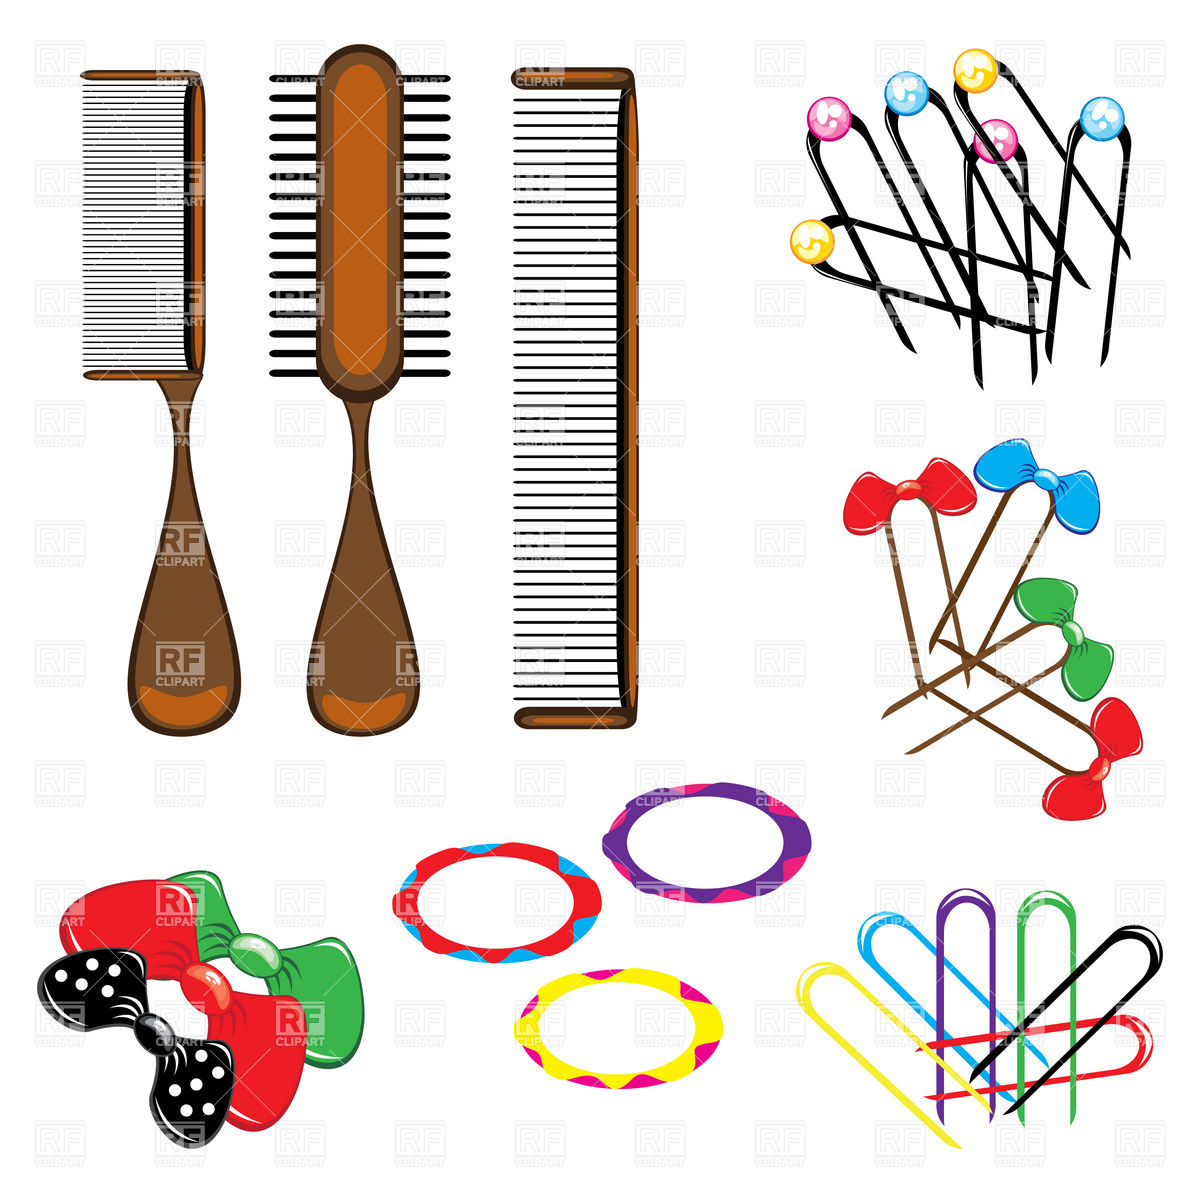 Clipart accessories.